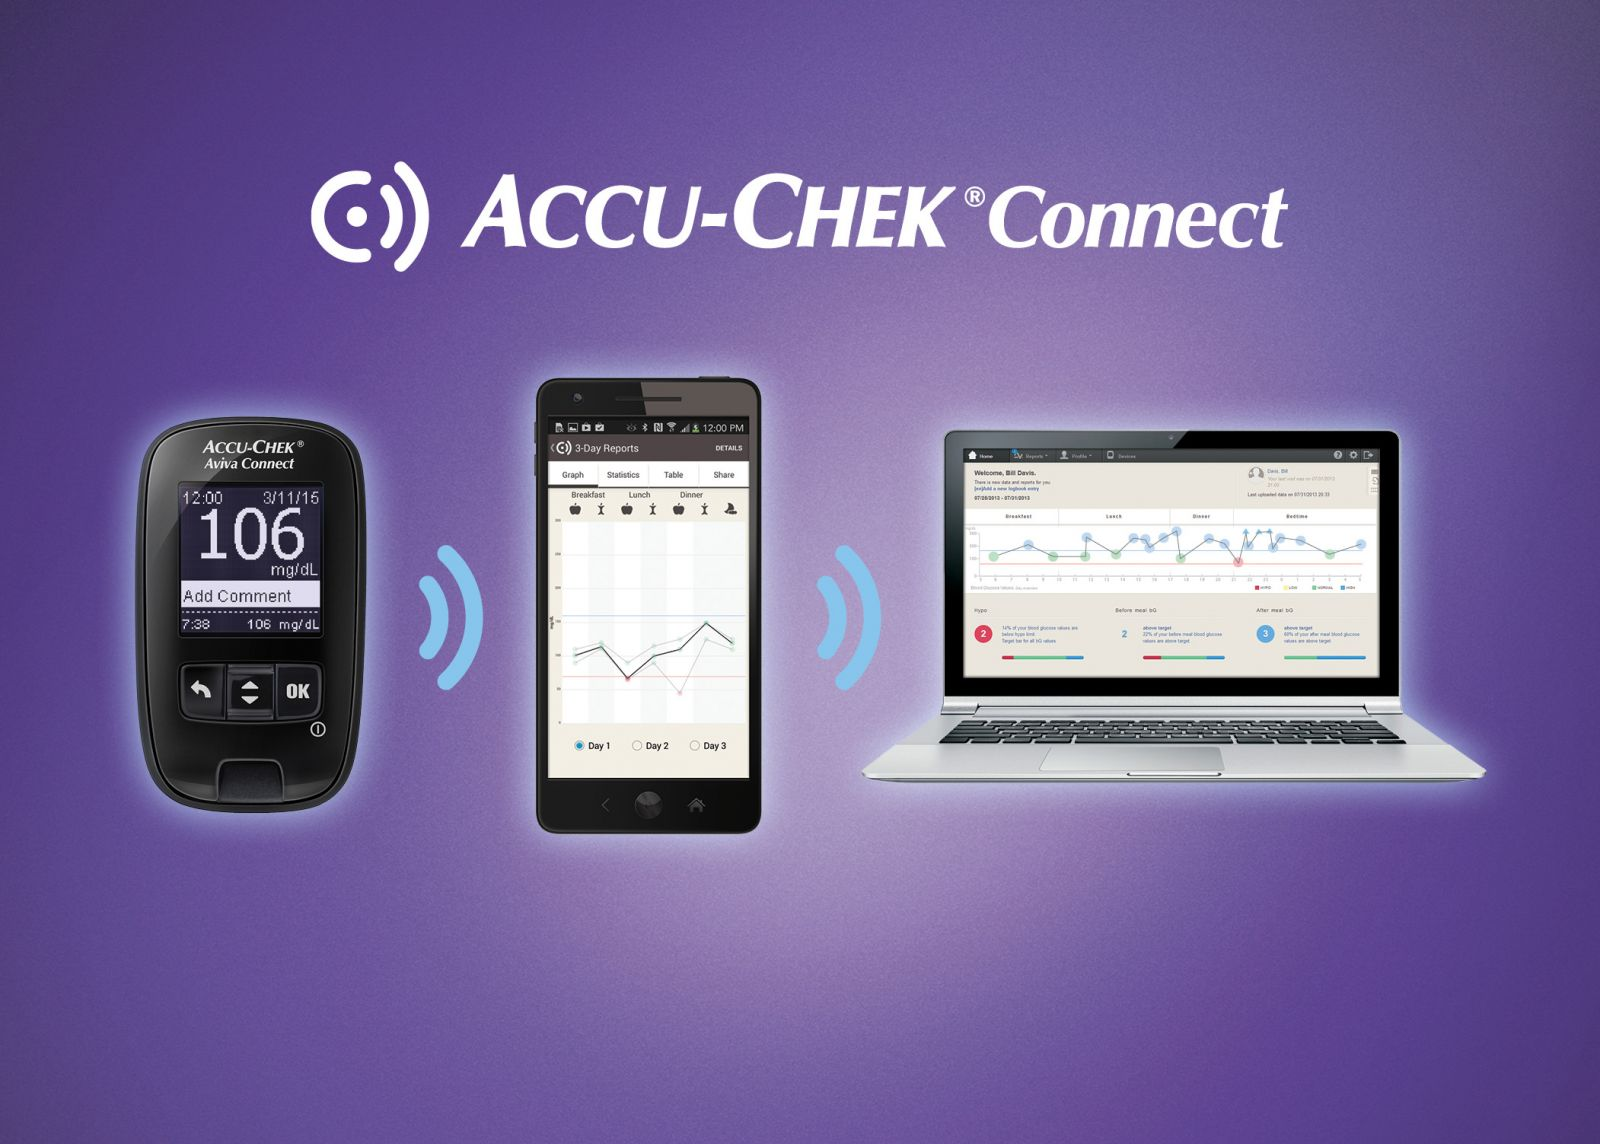 Roche Integrates Accu Chek Connect Glucose Meter With